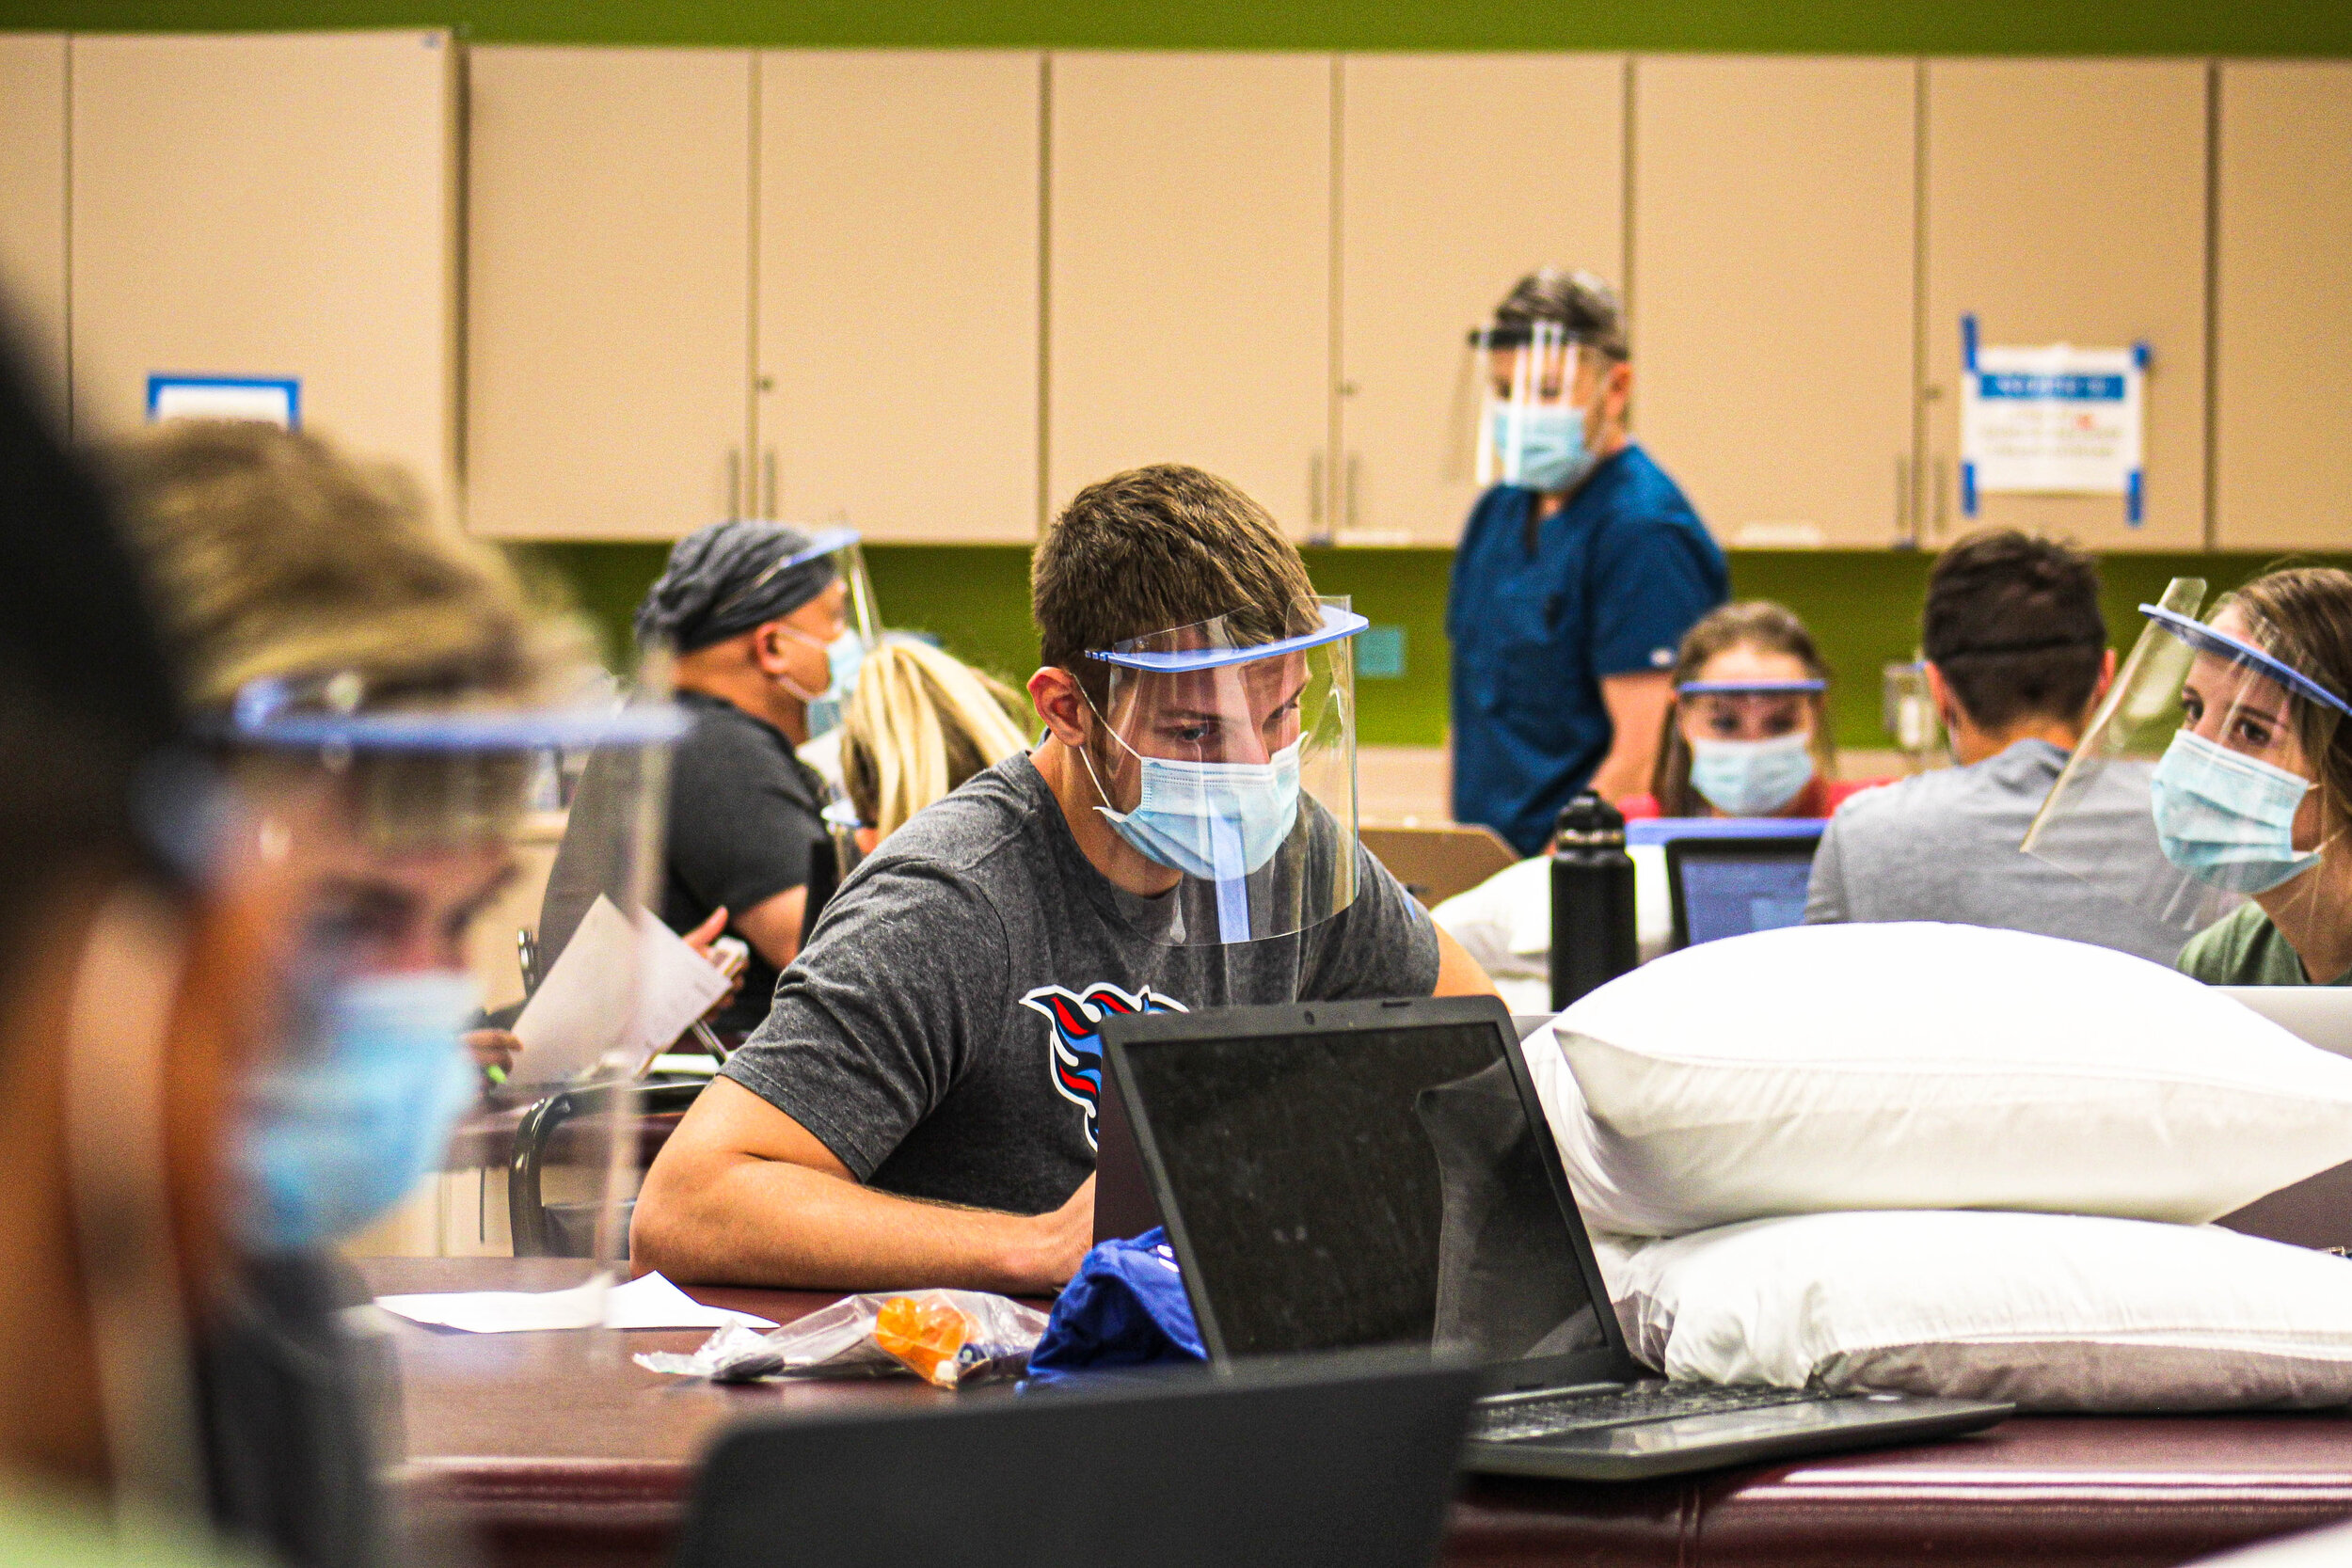 Returning physical therapy students at Rockhurst University wore protective gear and took safety precautions during an in-person lab for the first week of classes.  Zachary Linhares/The Beacon